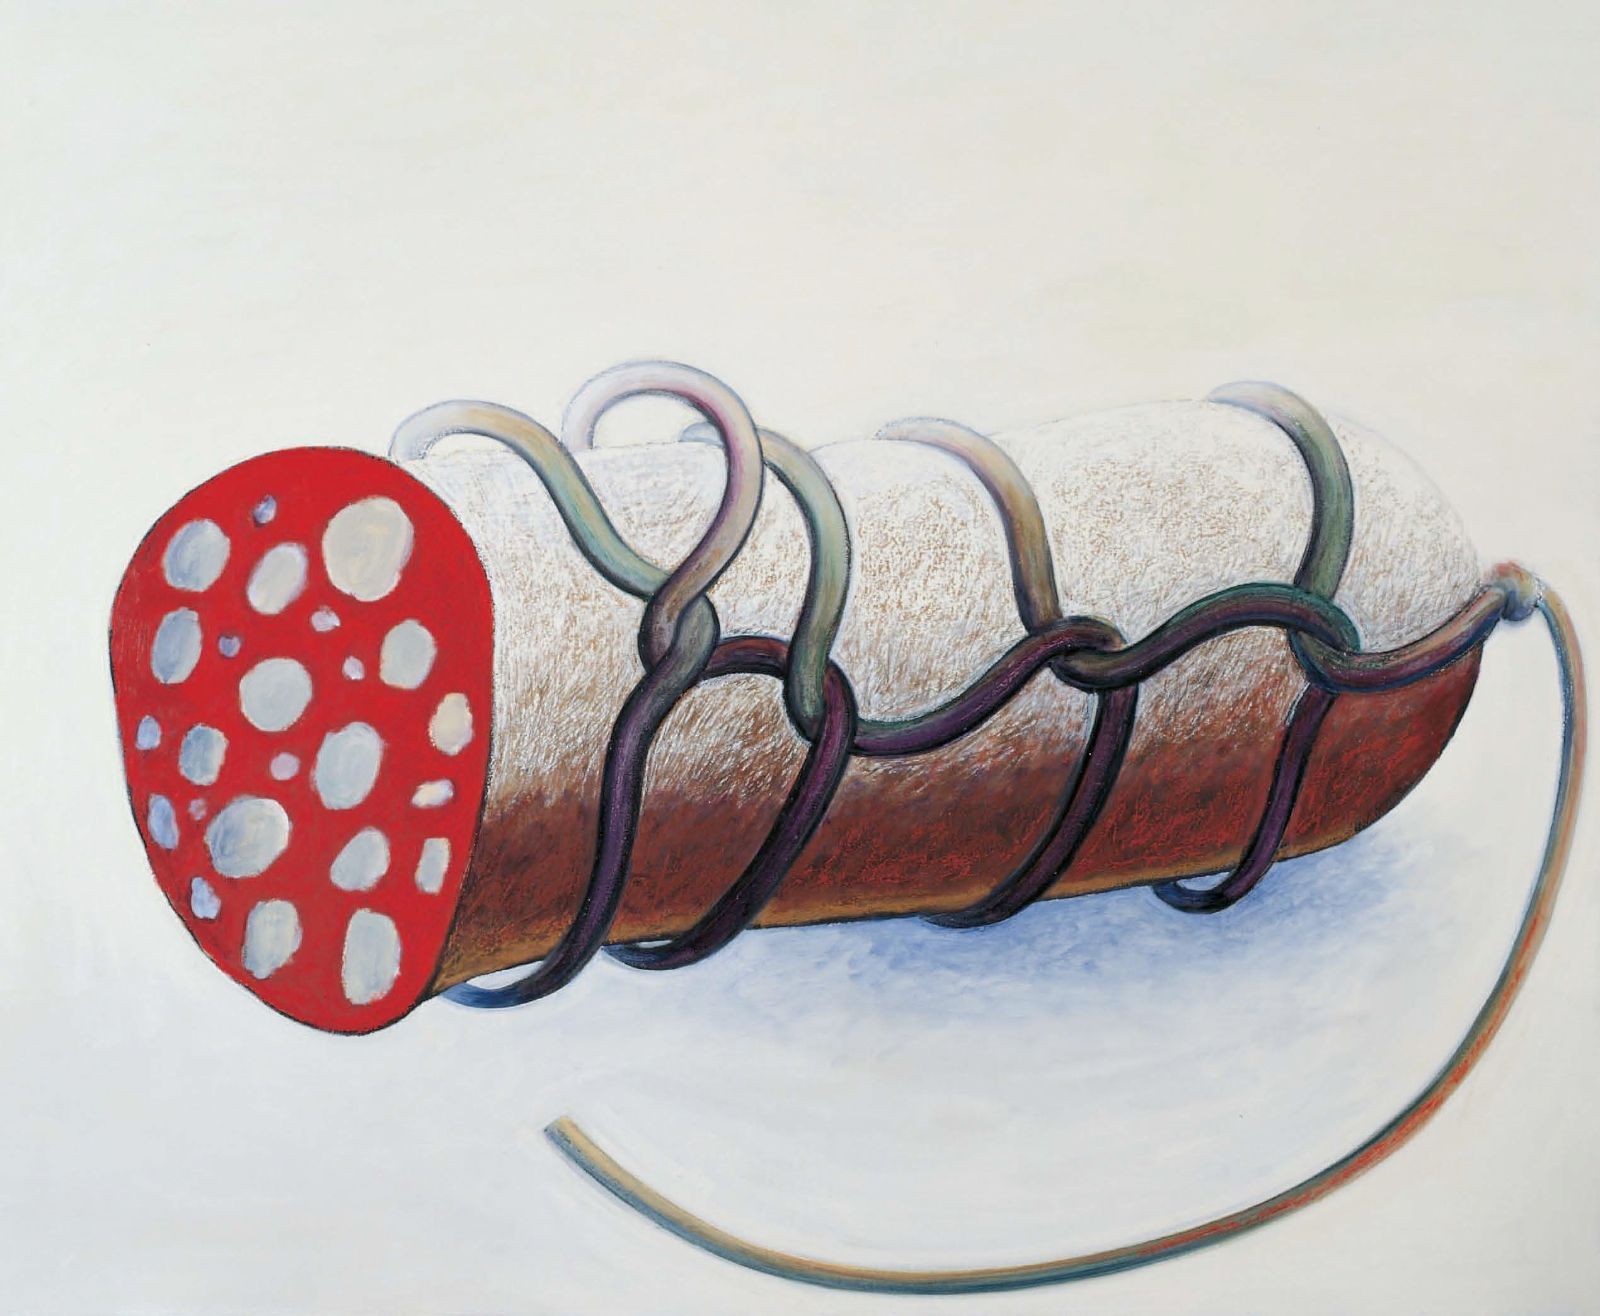 Large White Sausage, 2002, oil on canvas, 120 x 144 cm